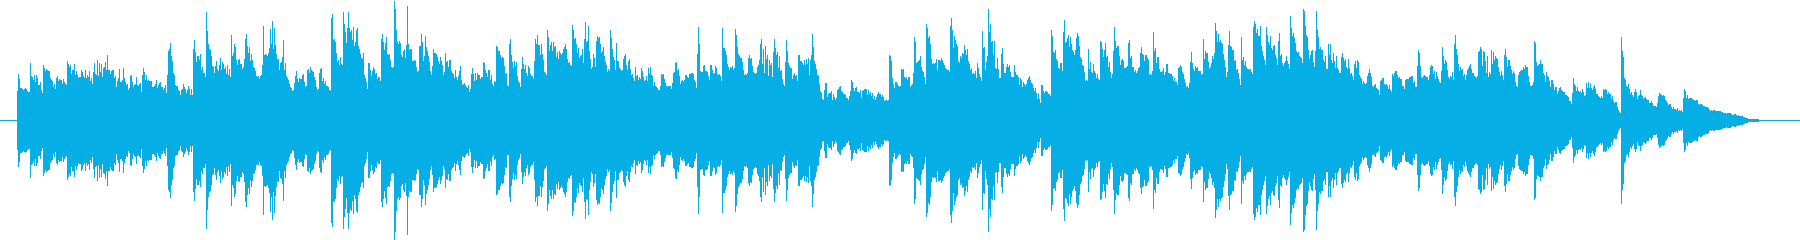 English folk song simple piano fast's reproduced waveform